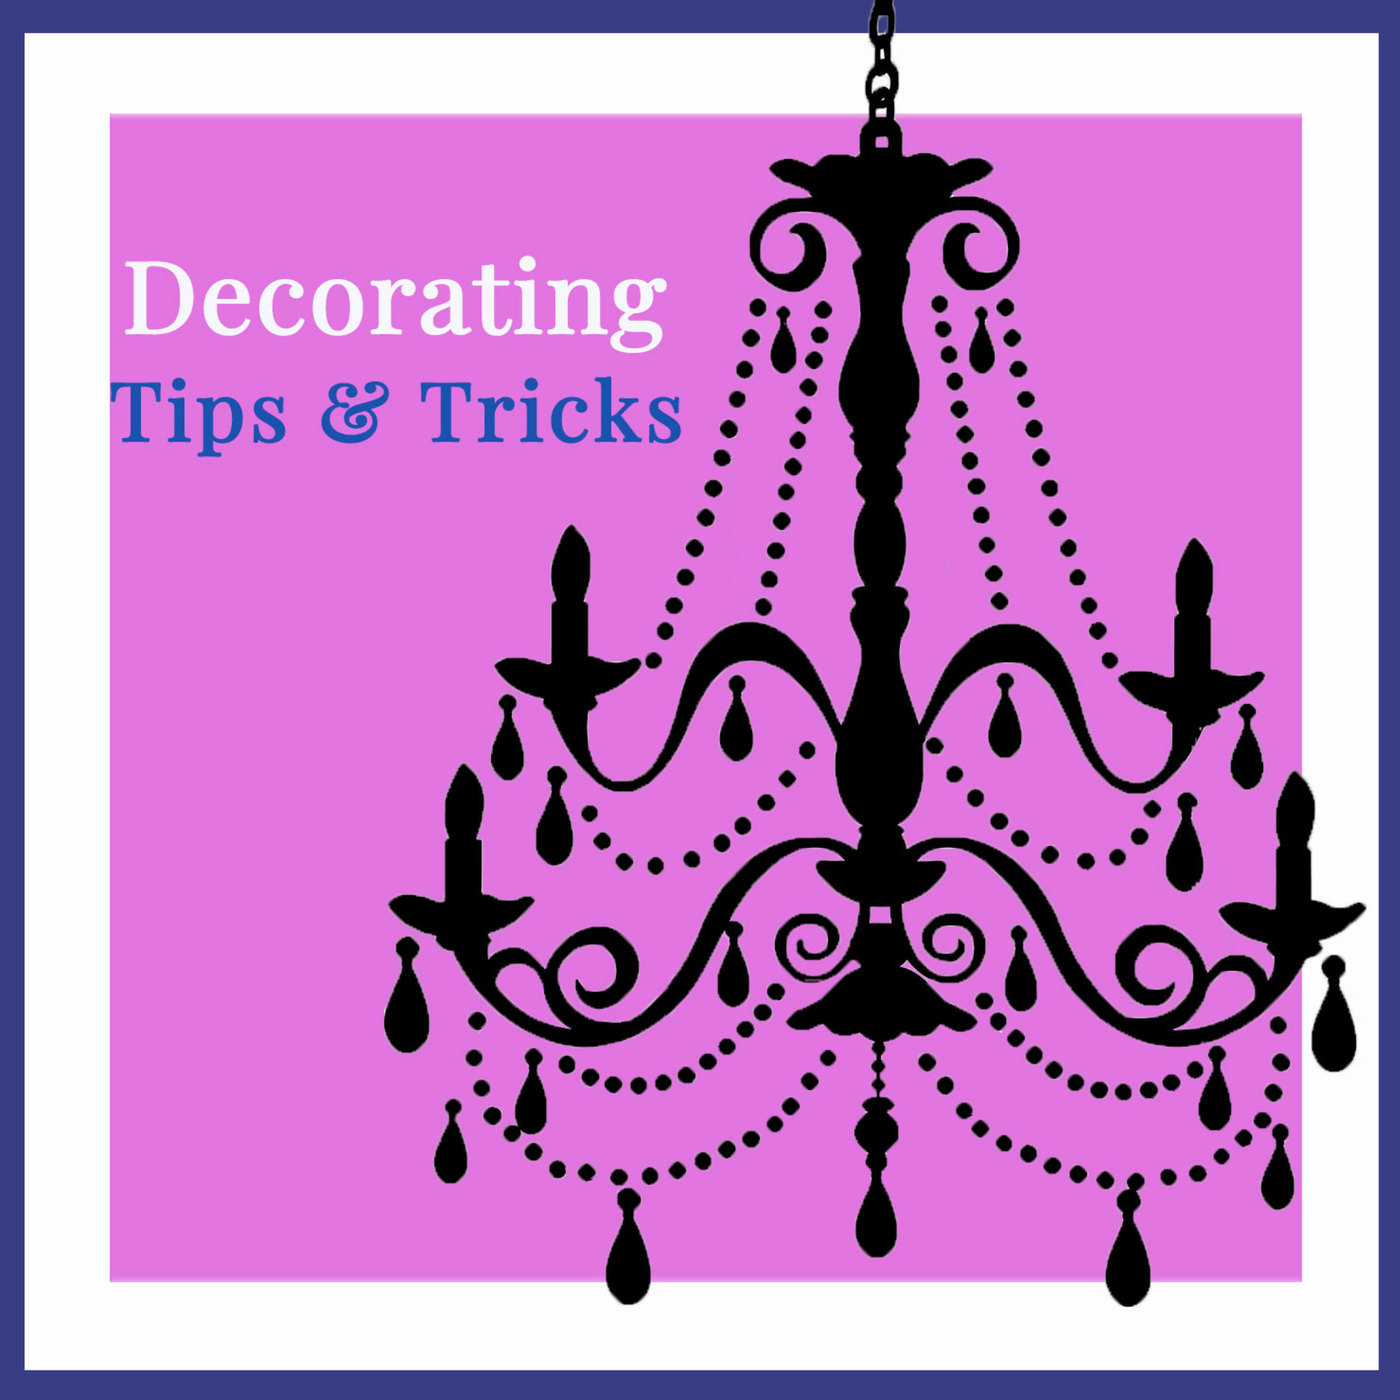 Decorating Tips and Tricks 127: Creative Ways to Set Your Table